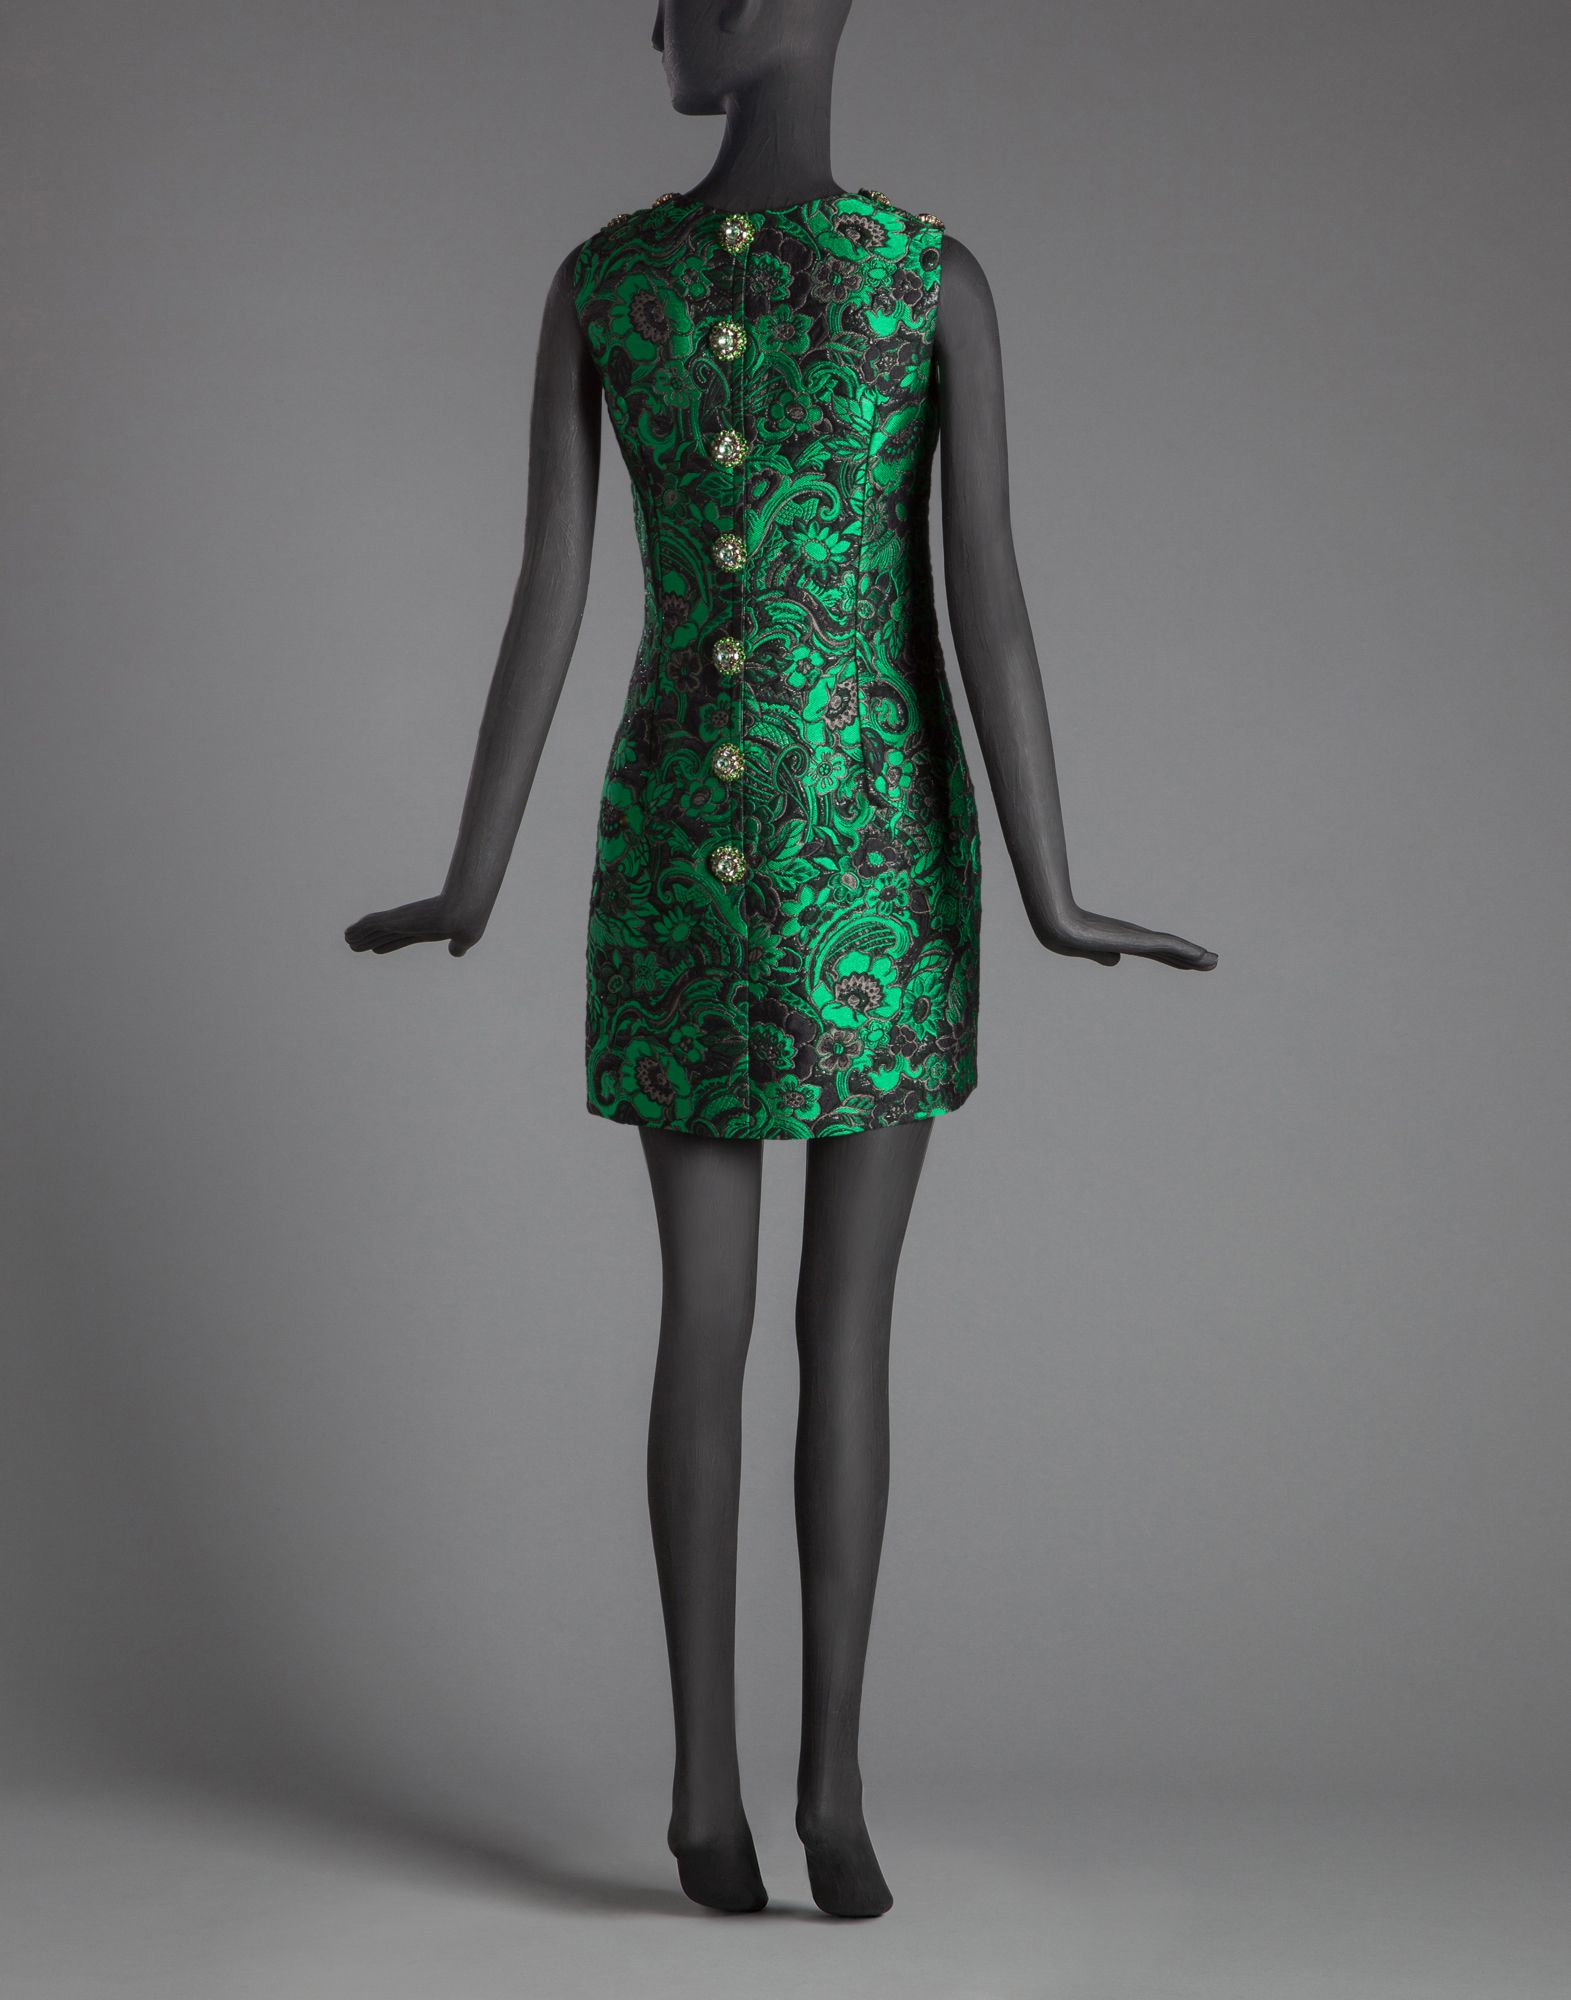 b678b34f Dolce & Gabbana Brocade Dress With Sequined Rose And Writing in ...